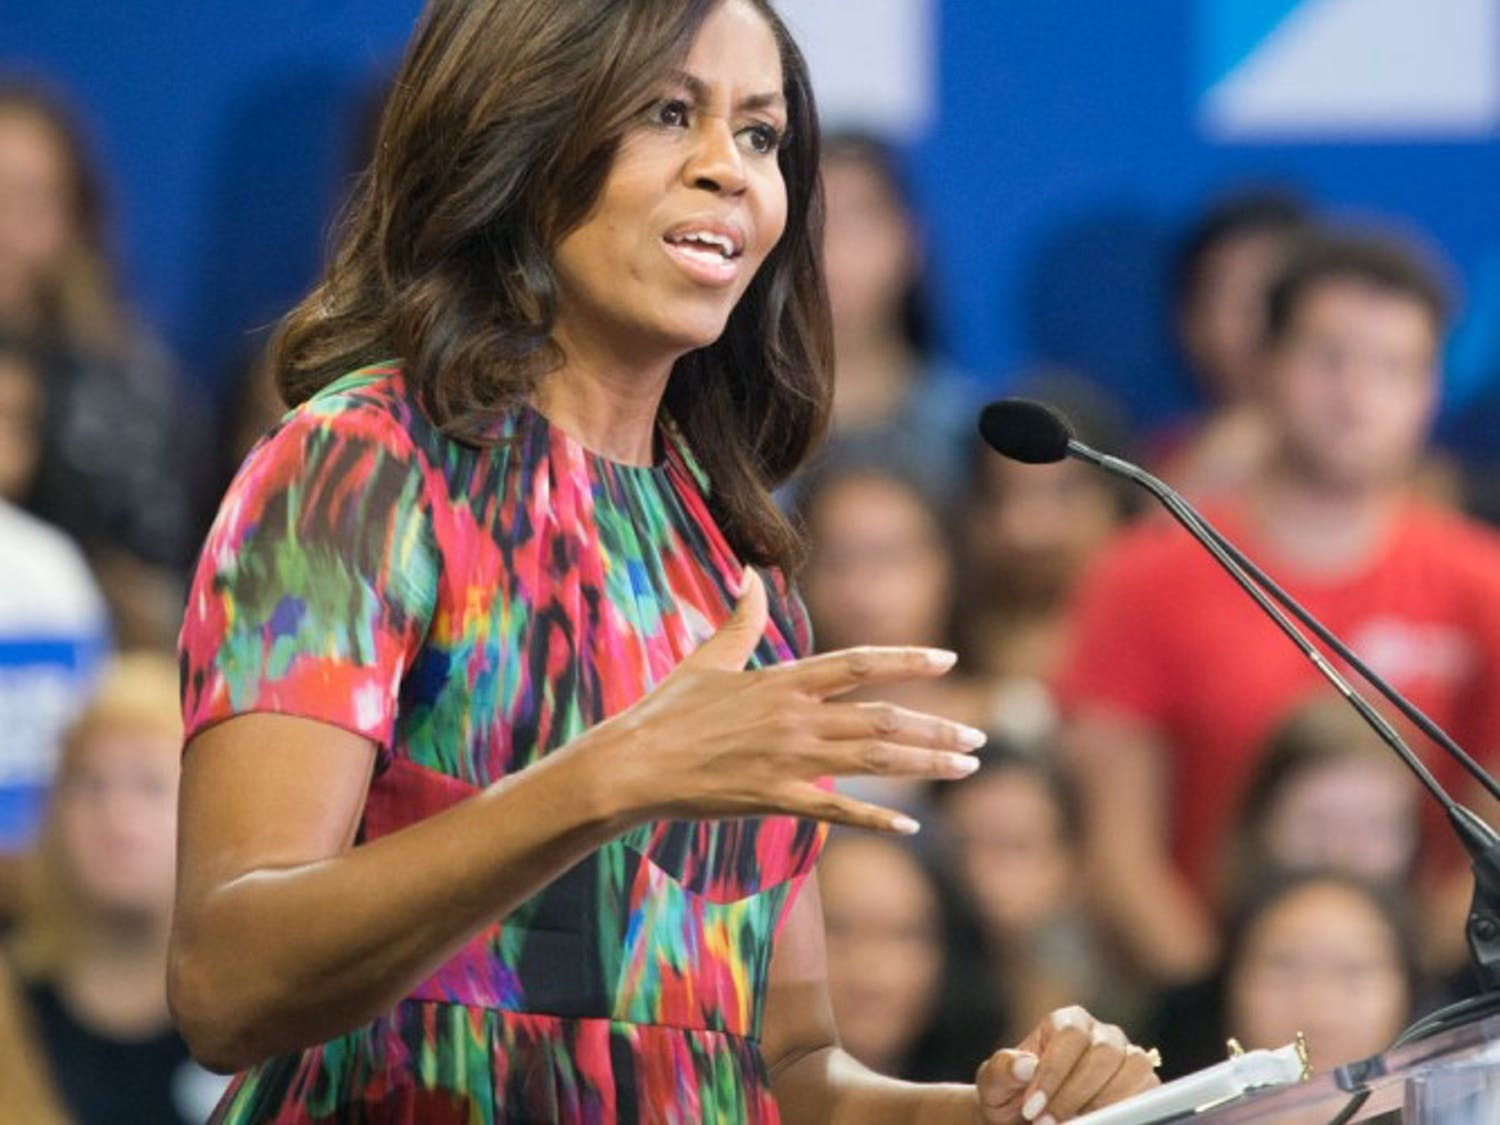 First Lady Michelle Obama campaigns for Hillary Clinton at the Reynolds Coliseum at NC State on Tuesday. She encouraged undecided people to vote for a candidate.